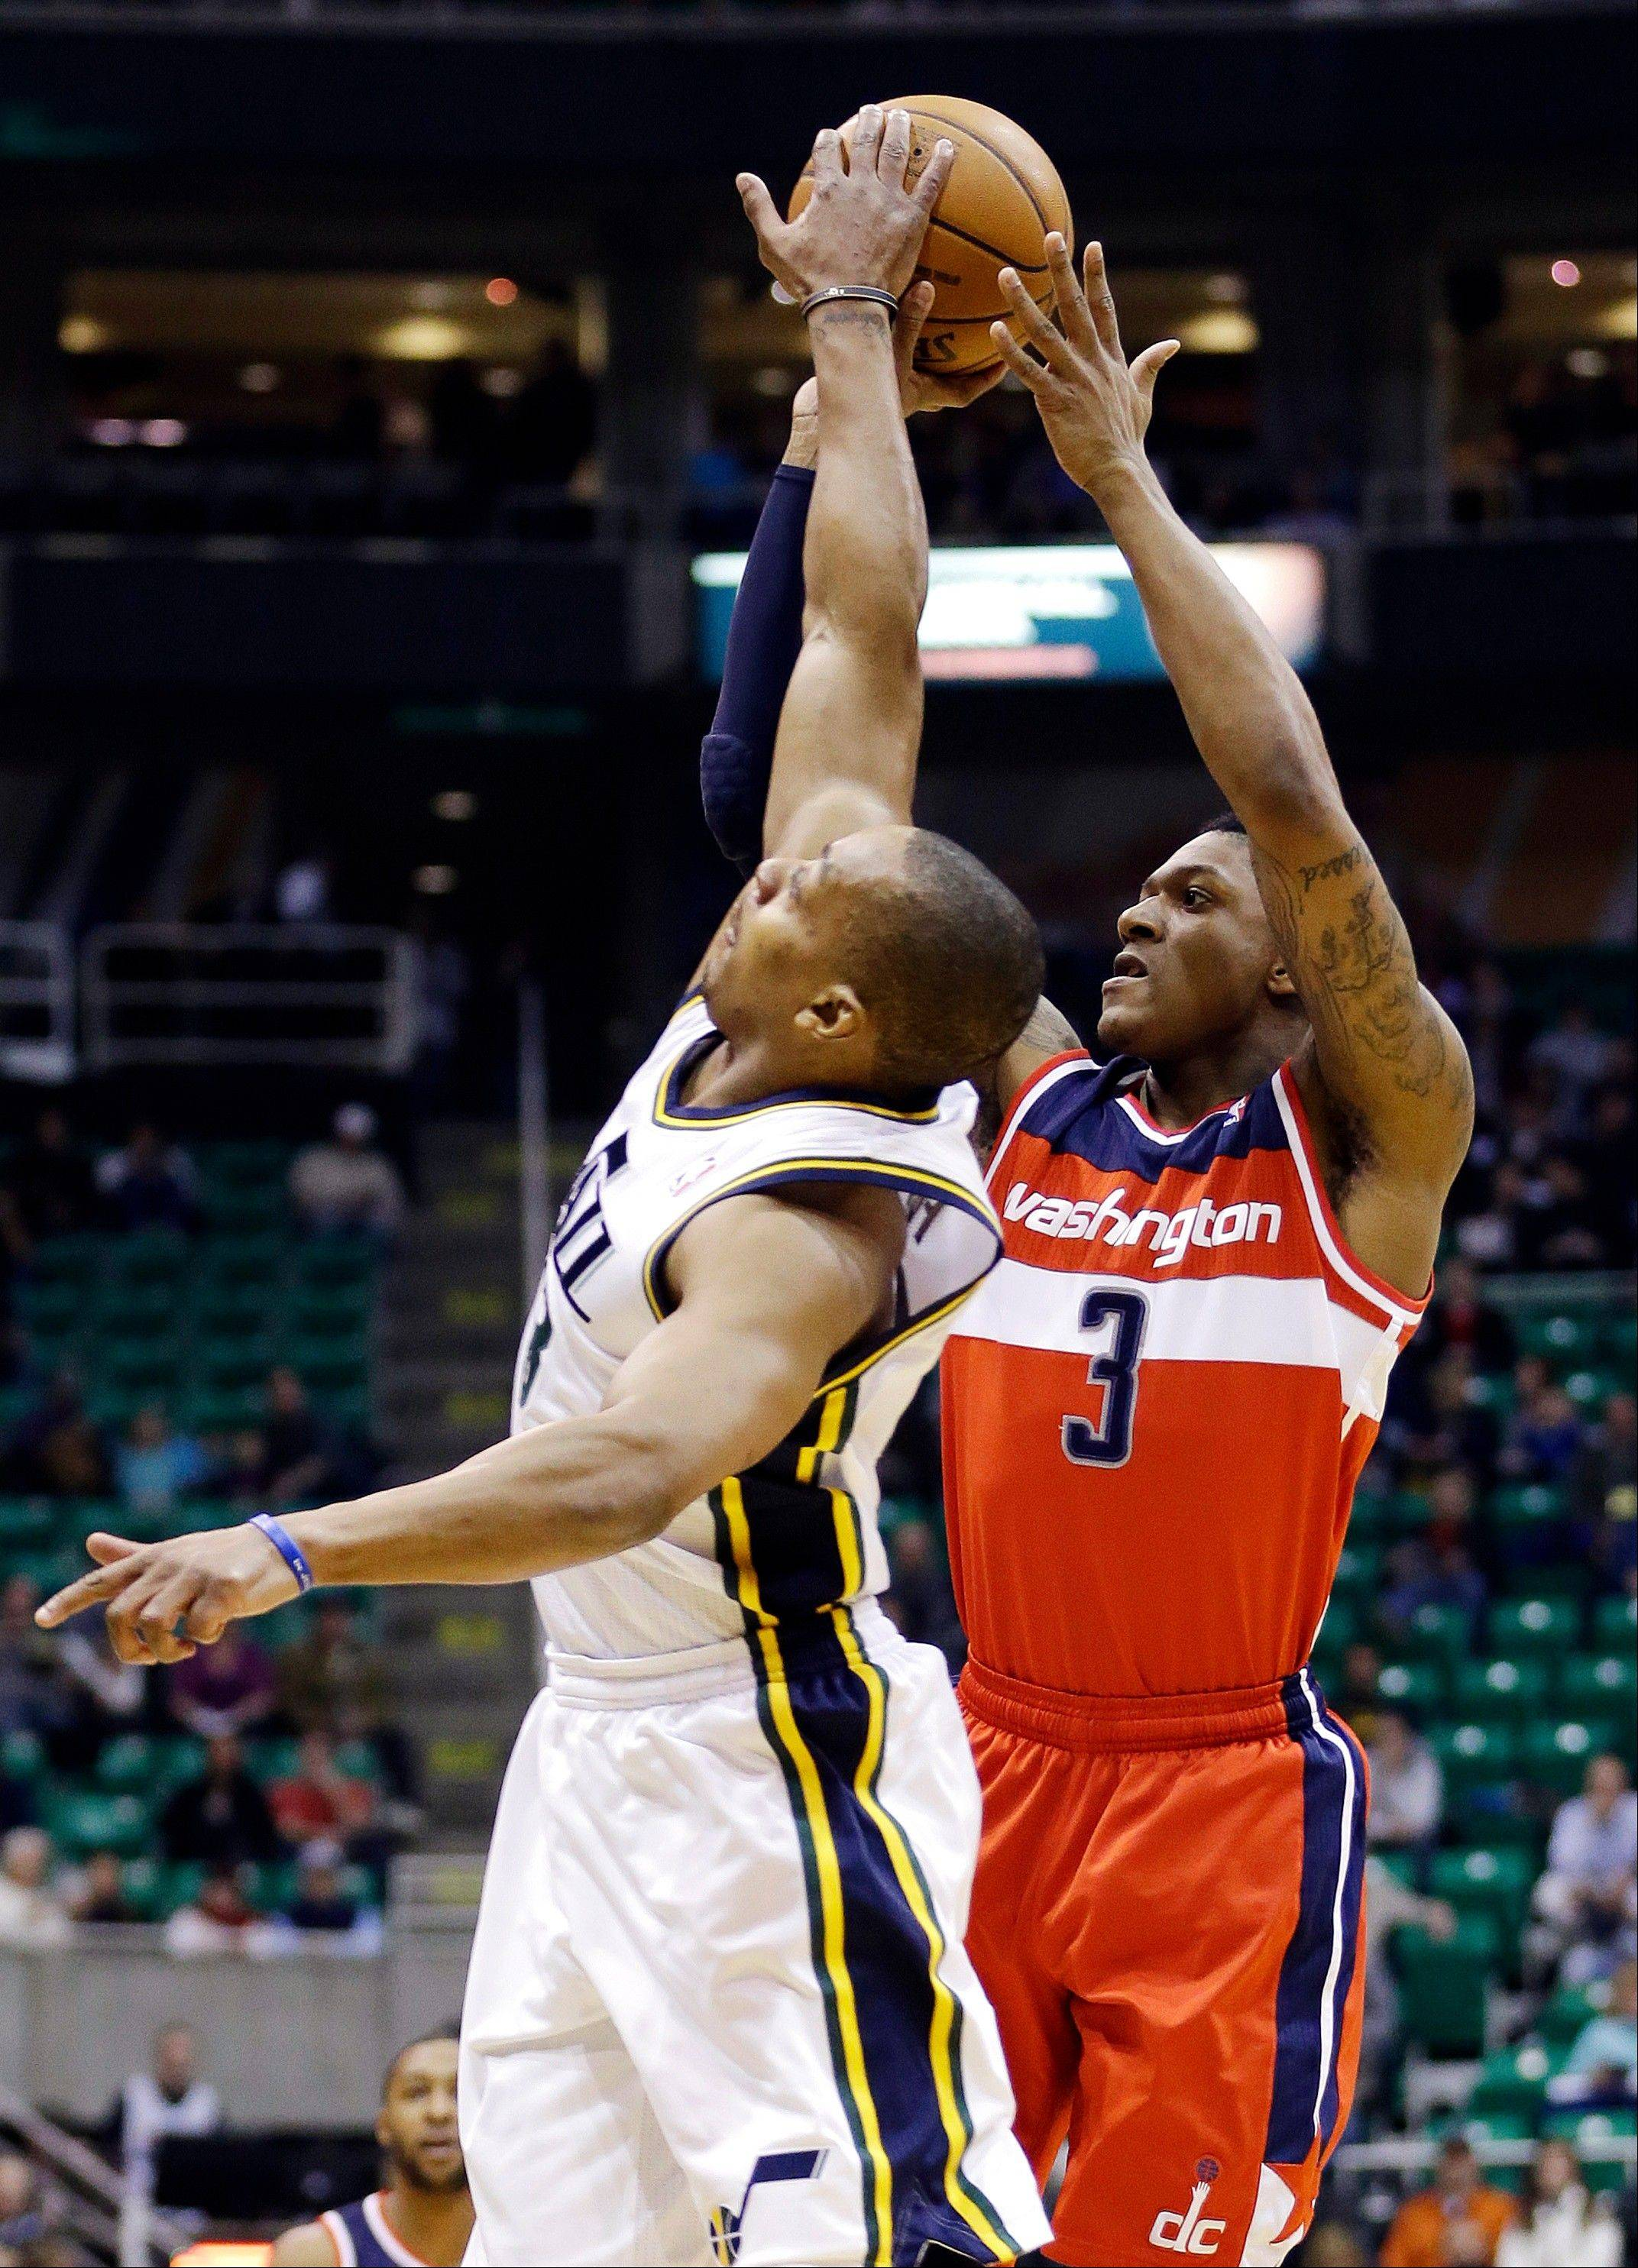 Utah Jazz's Randy Foye, left, blocks the shot of Washington Wizards' Bradley Beal (3) during the first quarter of an NBA basketball game, Wednesday, Jan. 23, 2013, in Salt Lake City.